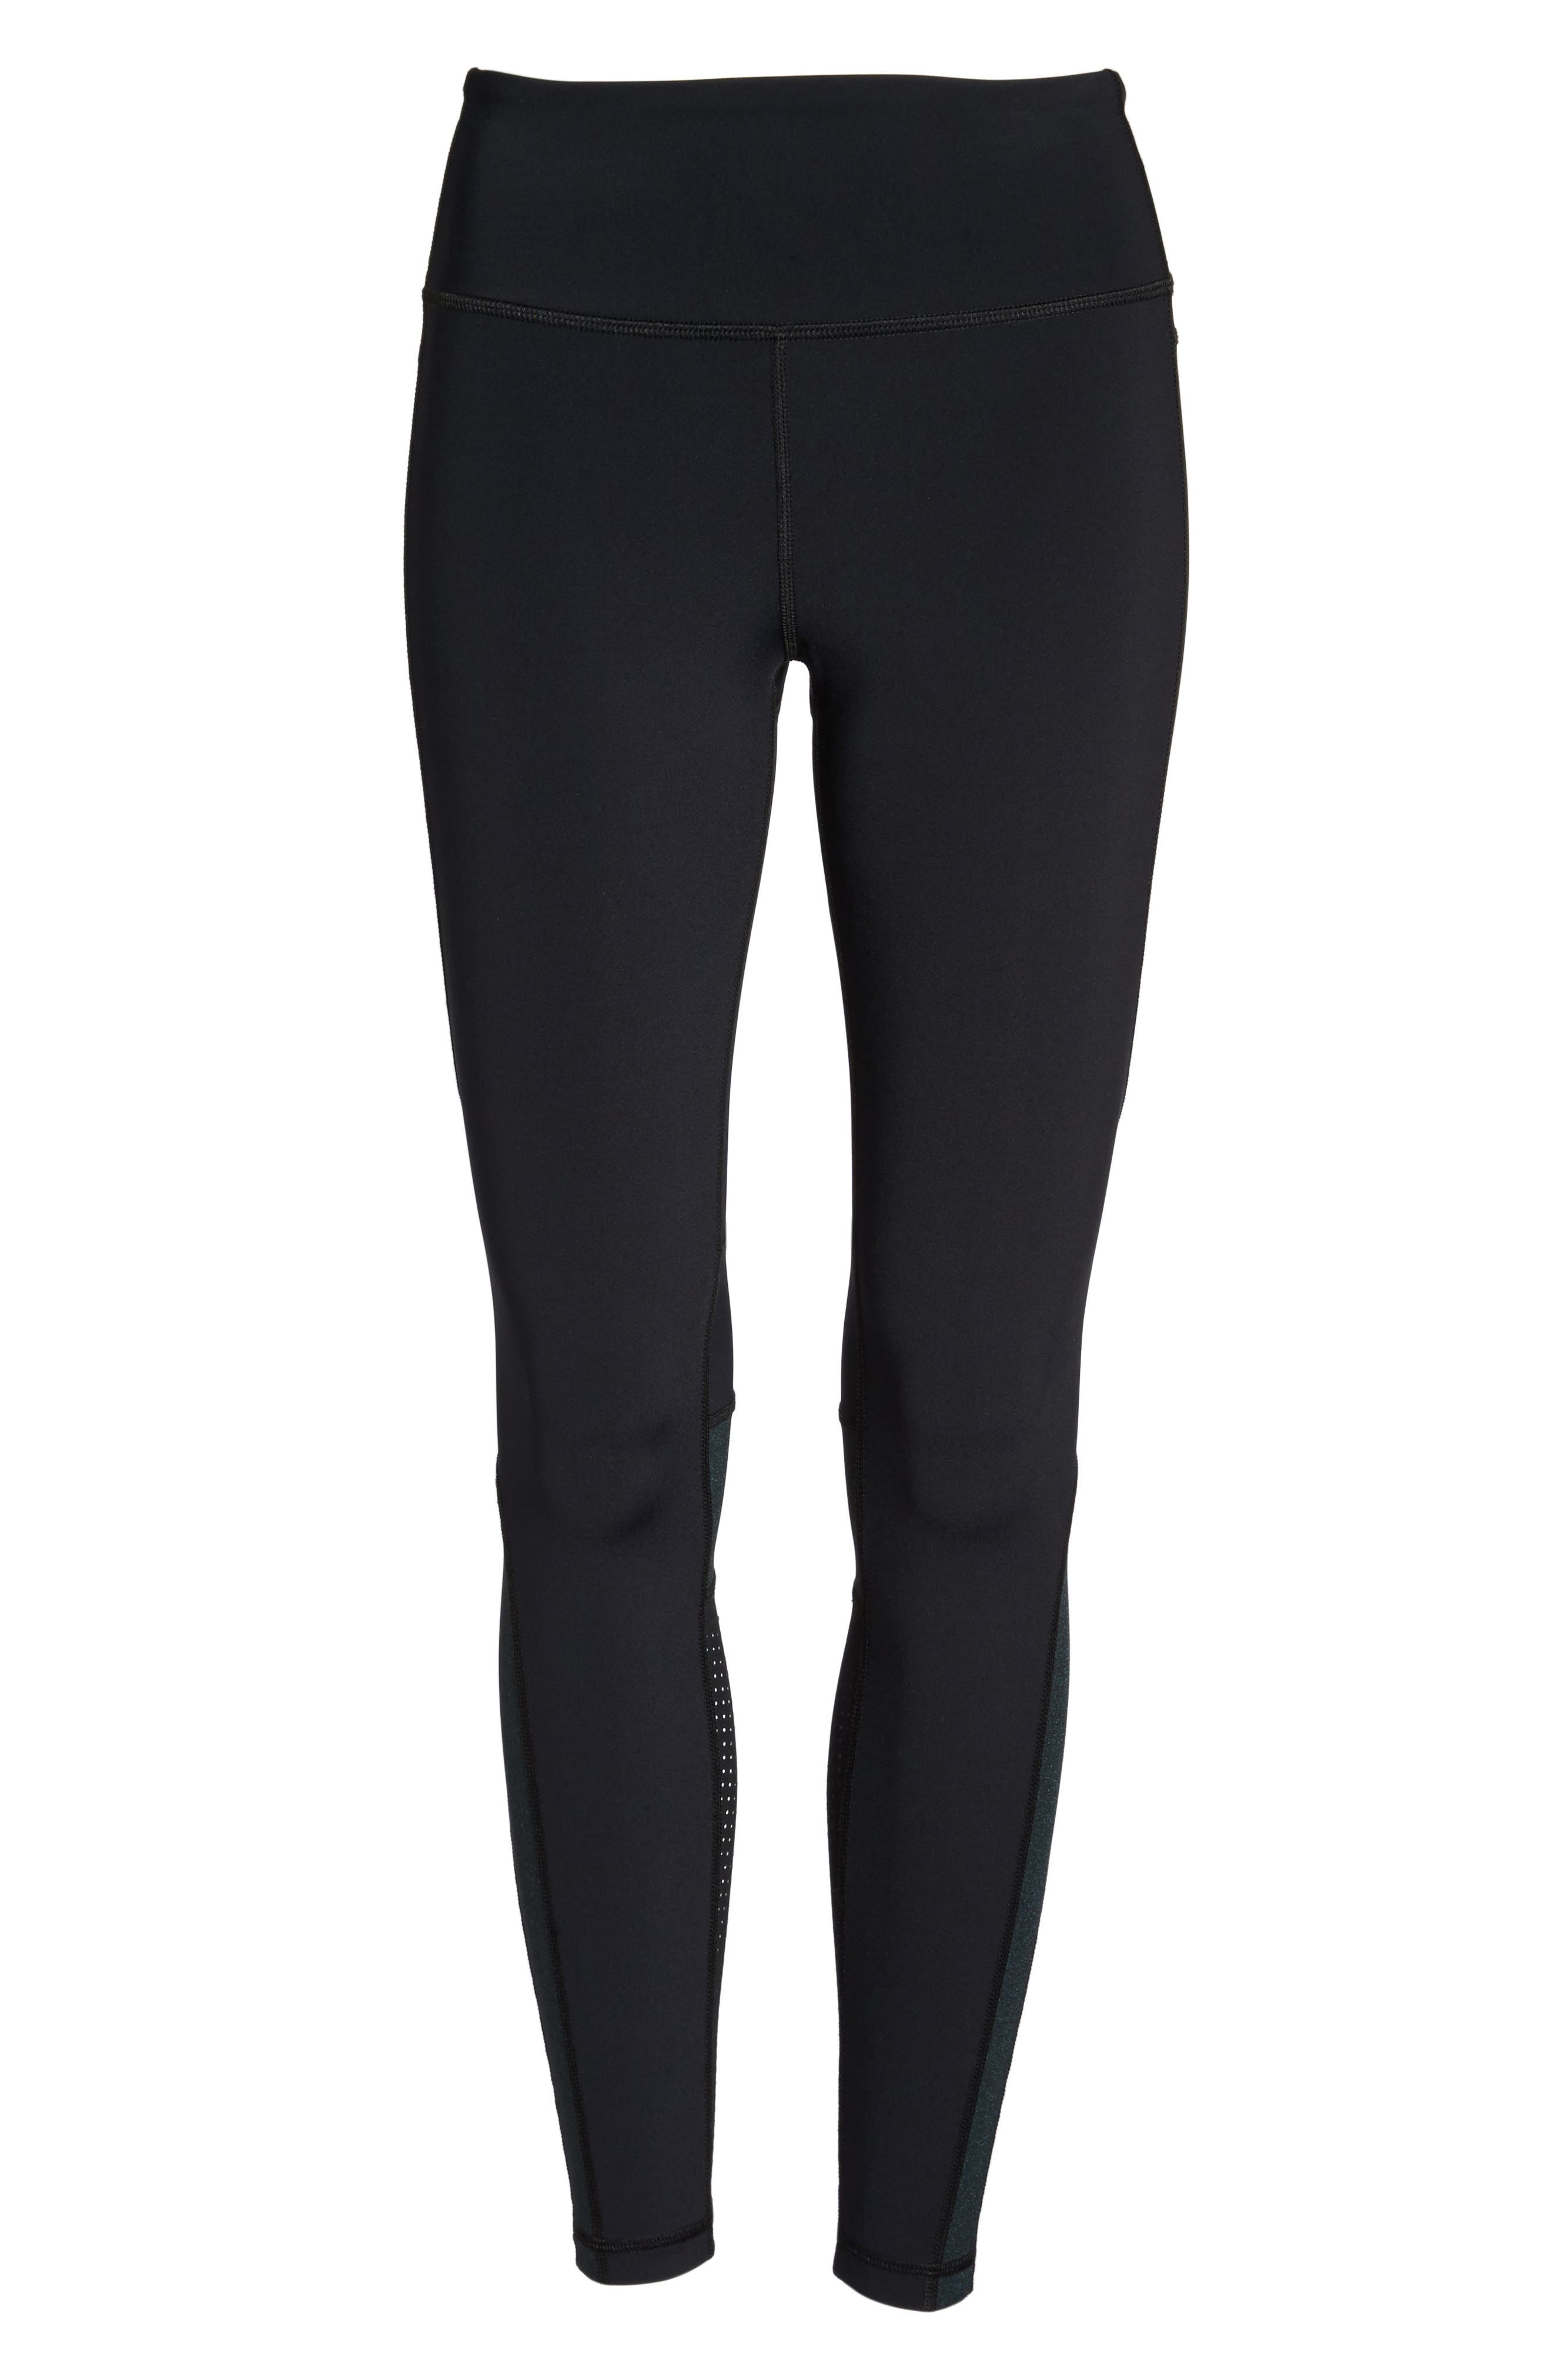 Siren Performance Tights,                             Alternate thumbnail 7, color,                             002